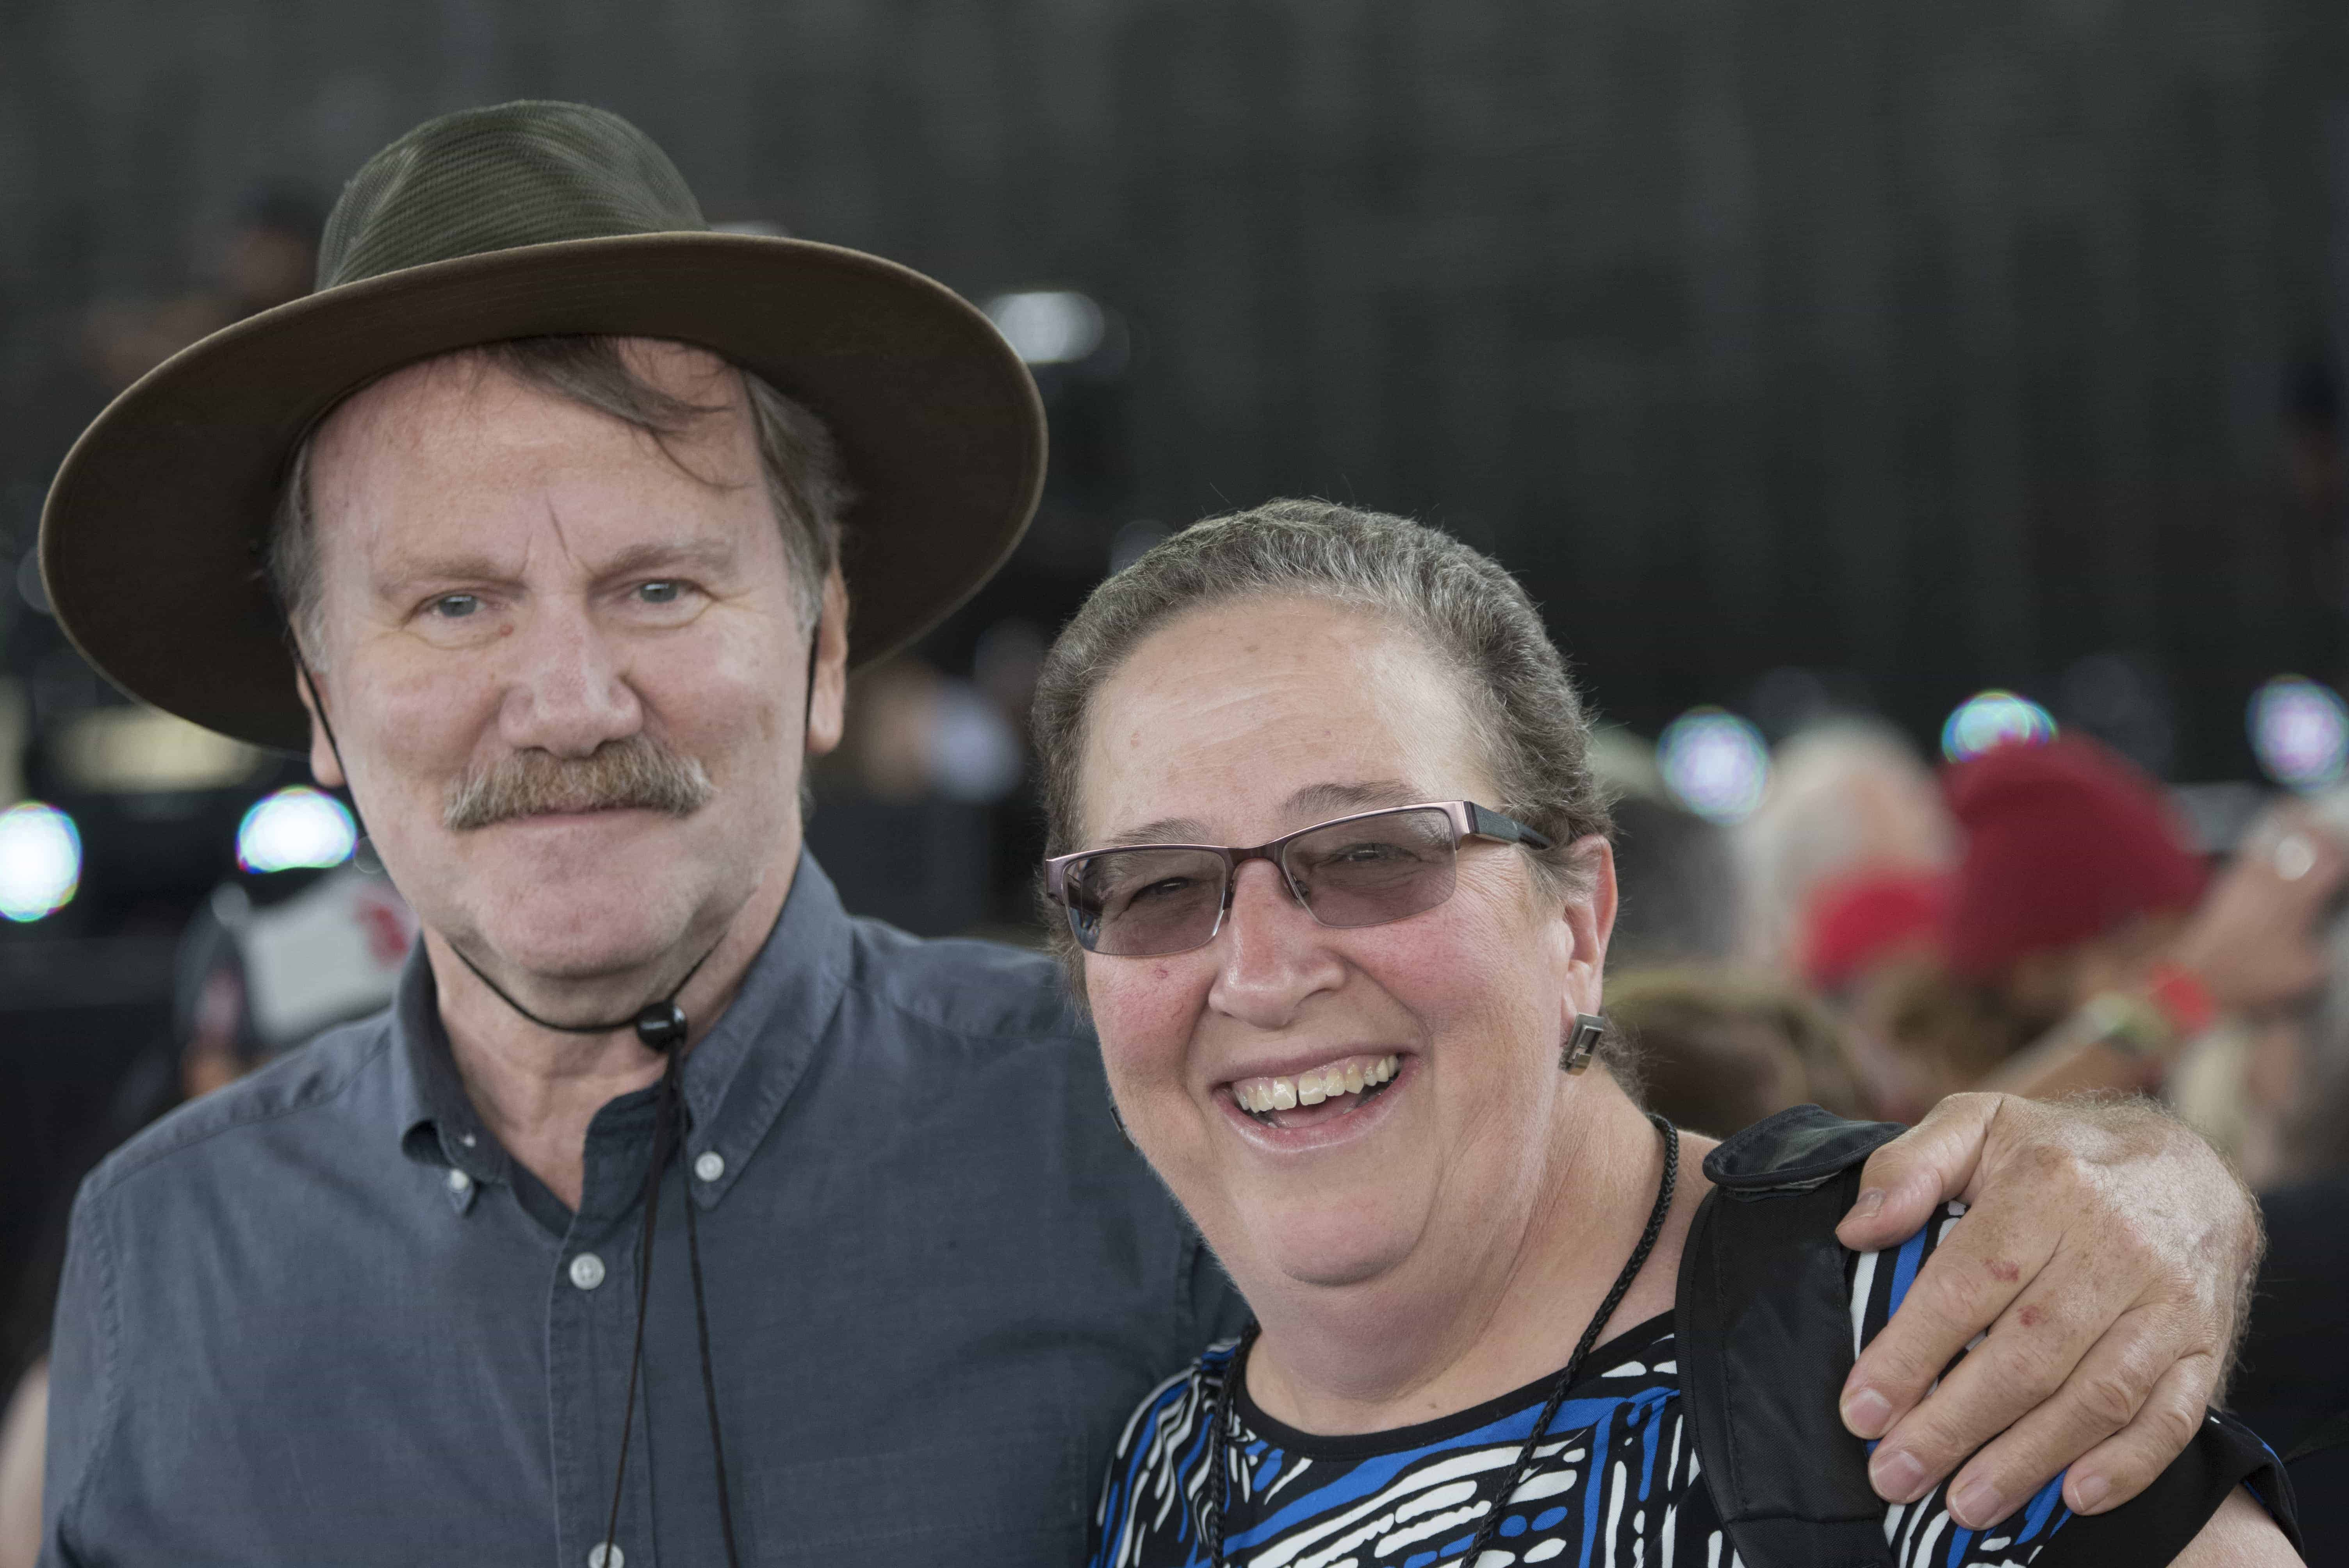 Kathy Ozer with husband David Battey, at Farm Aid 2016. Photo by Scott Streble